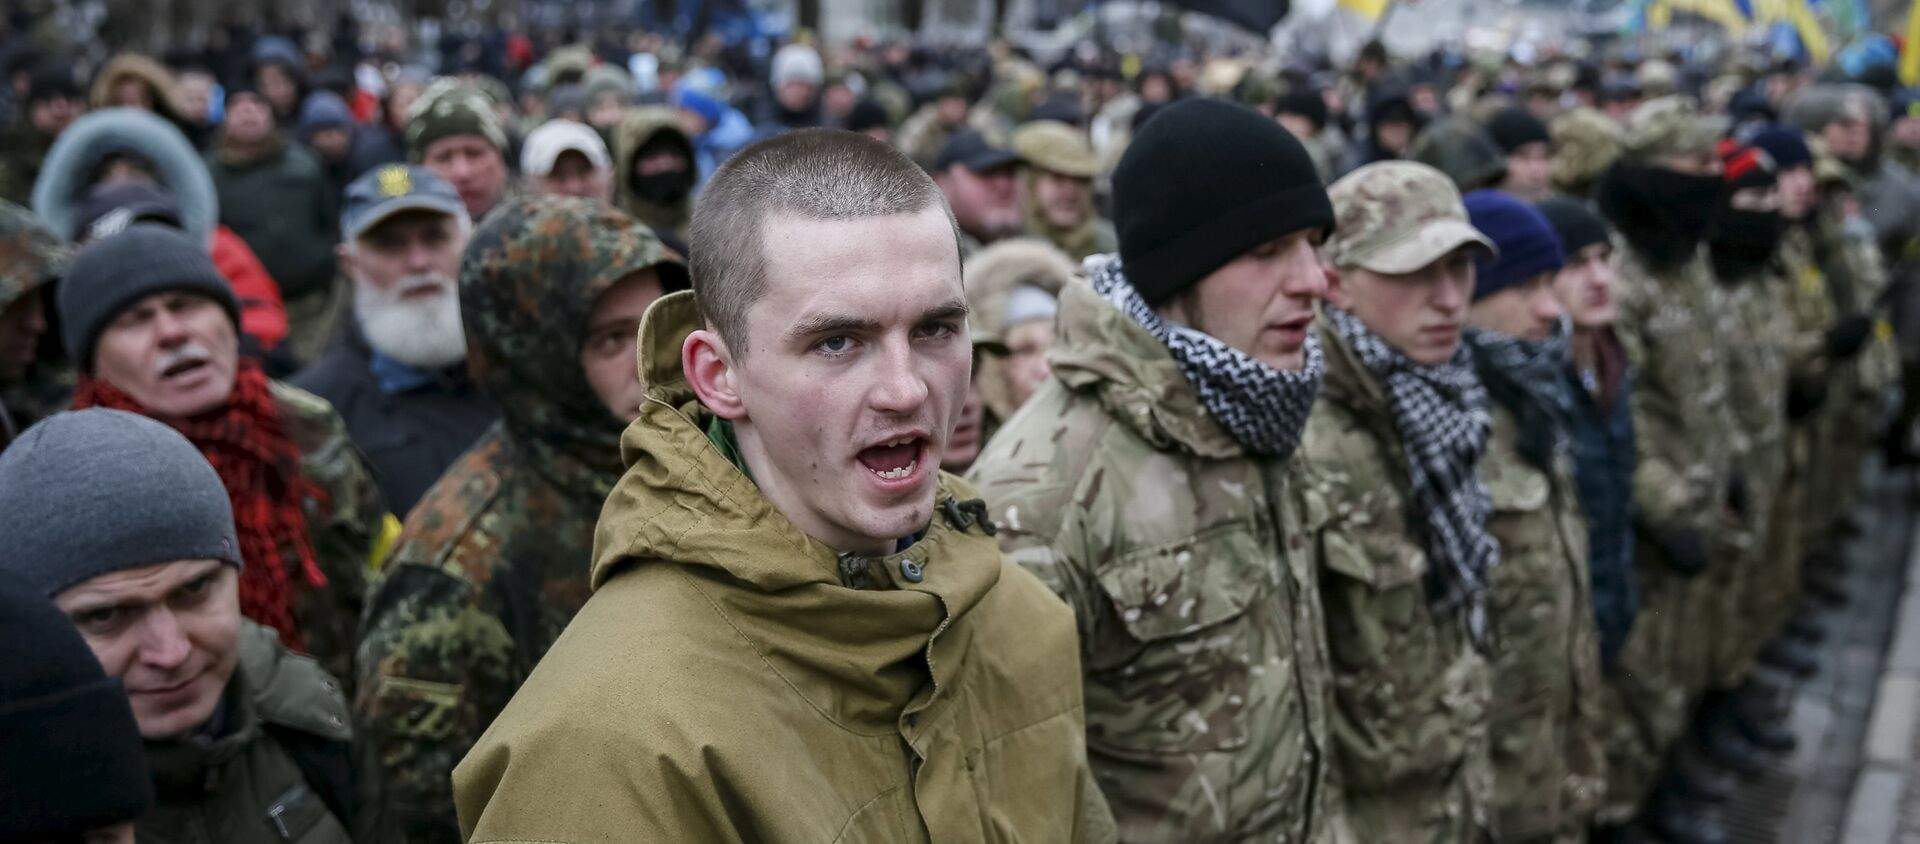 Members of self-defence battalions take part in a rally to commemorate demonstrators who were killed during the Maidan protests in 2014 in Kiev, Ukraine, February 20, 2016 - Sputnik Italia, 1920, 28.12.2016